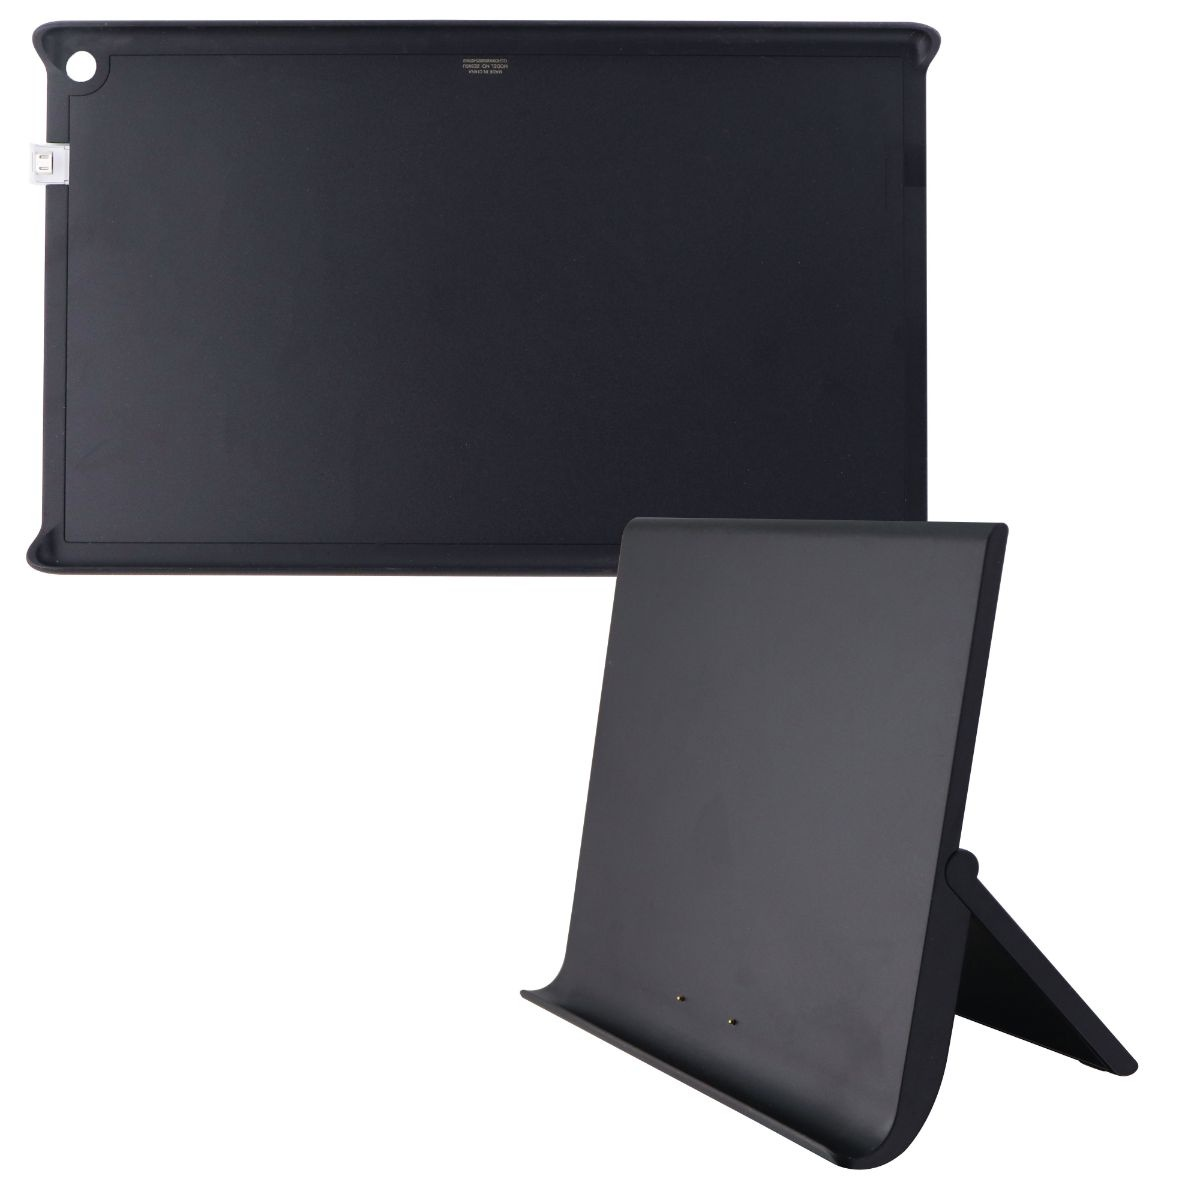 Amazon Show Mode Charging Dock for Amazon Fire HD 10 (7th Generation) - Black